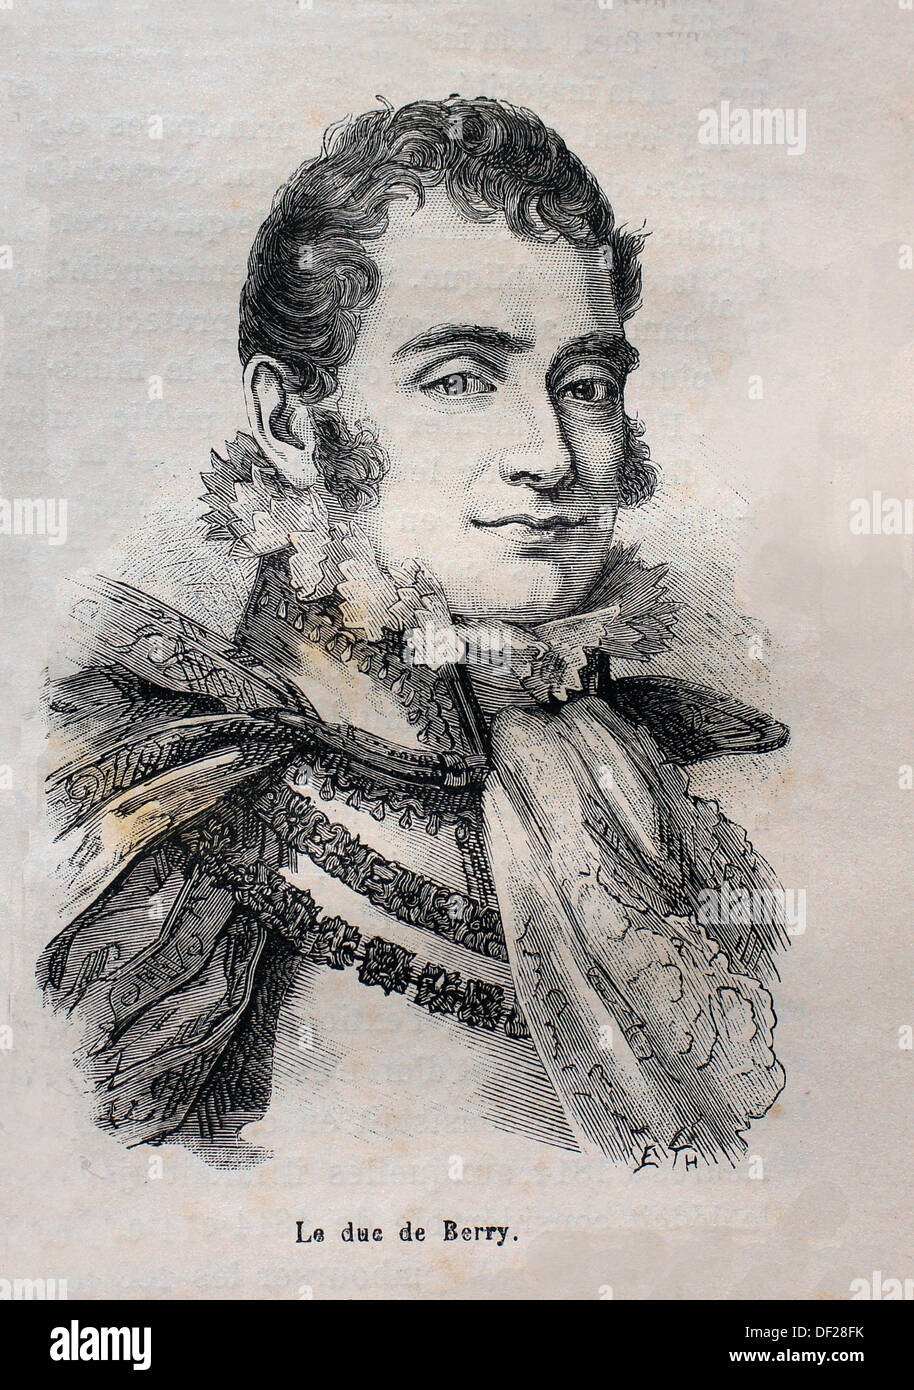 France, History, 19th Century, Duke de Berry: Charles X 9 October 1757 - 6 November 1836 ruled as King of France and of Navarre - Stock Image